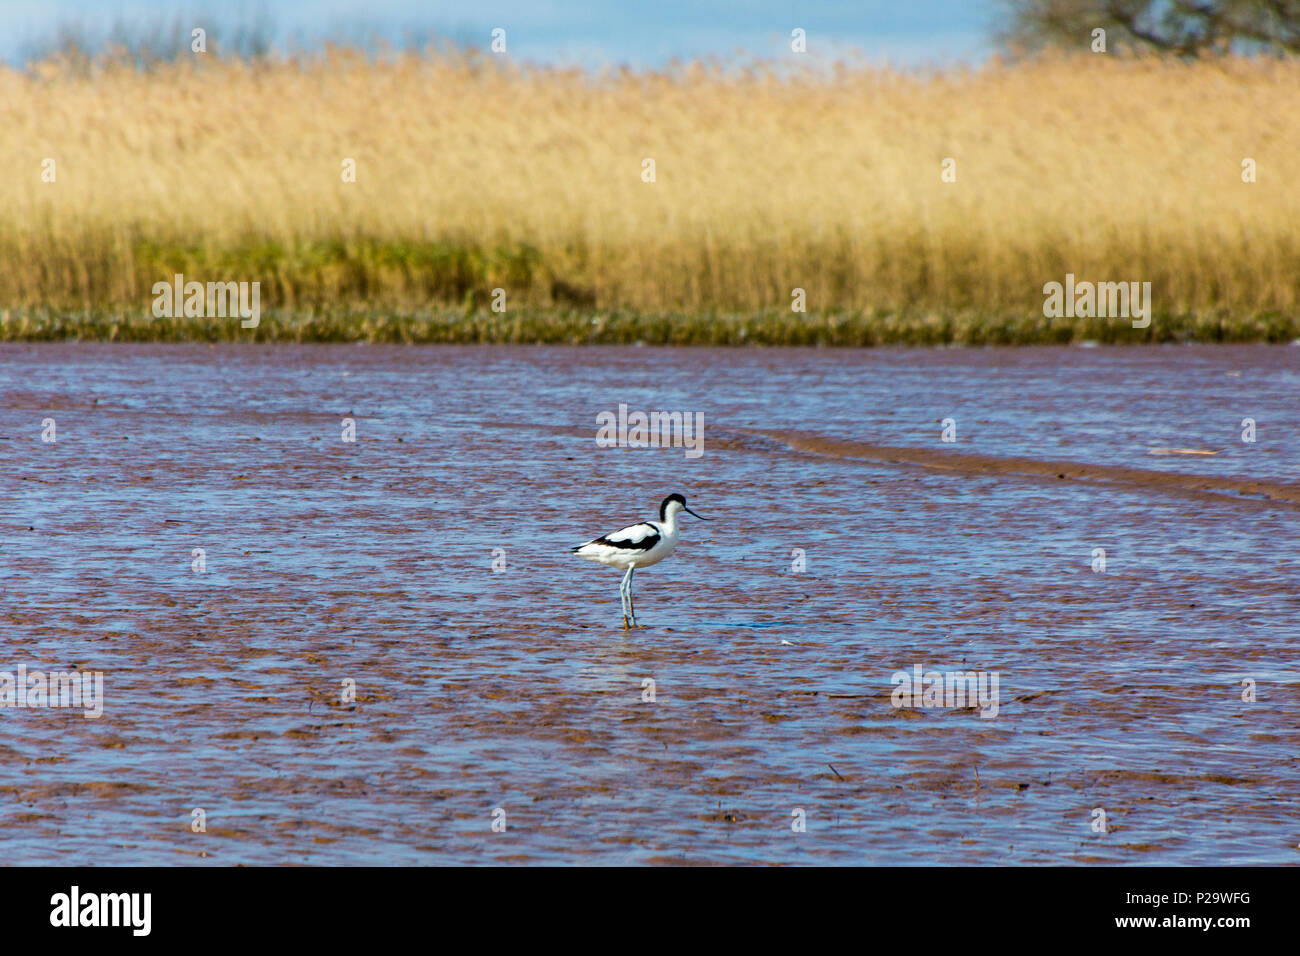 A pied avocet (Recurvirostra avosetta) feeding on the mudflats of the River Exe near Topsham, Devon, England, UK - Stock Image